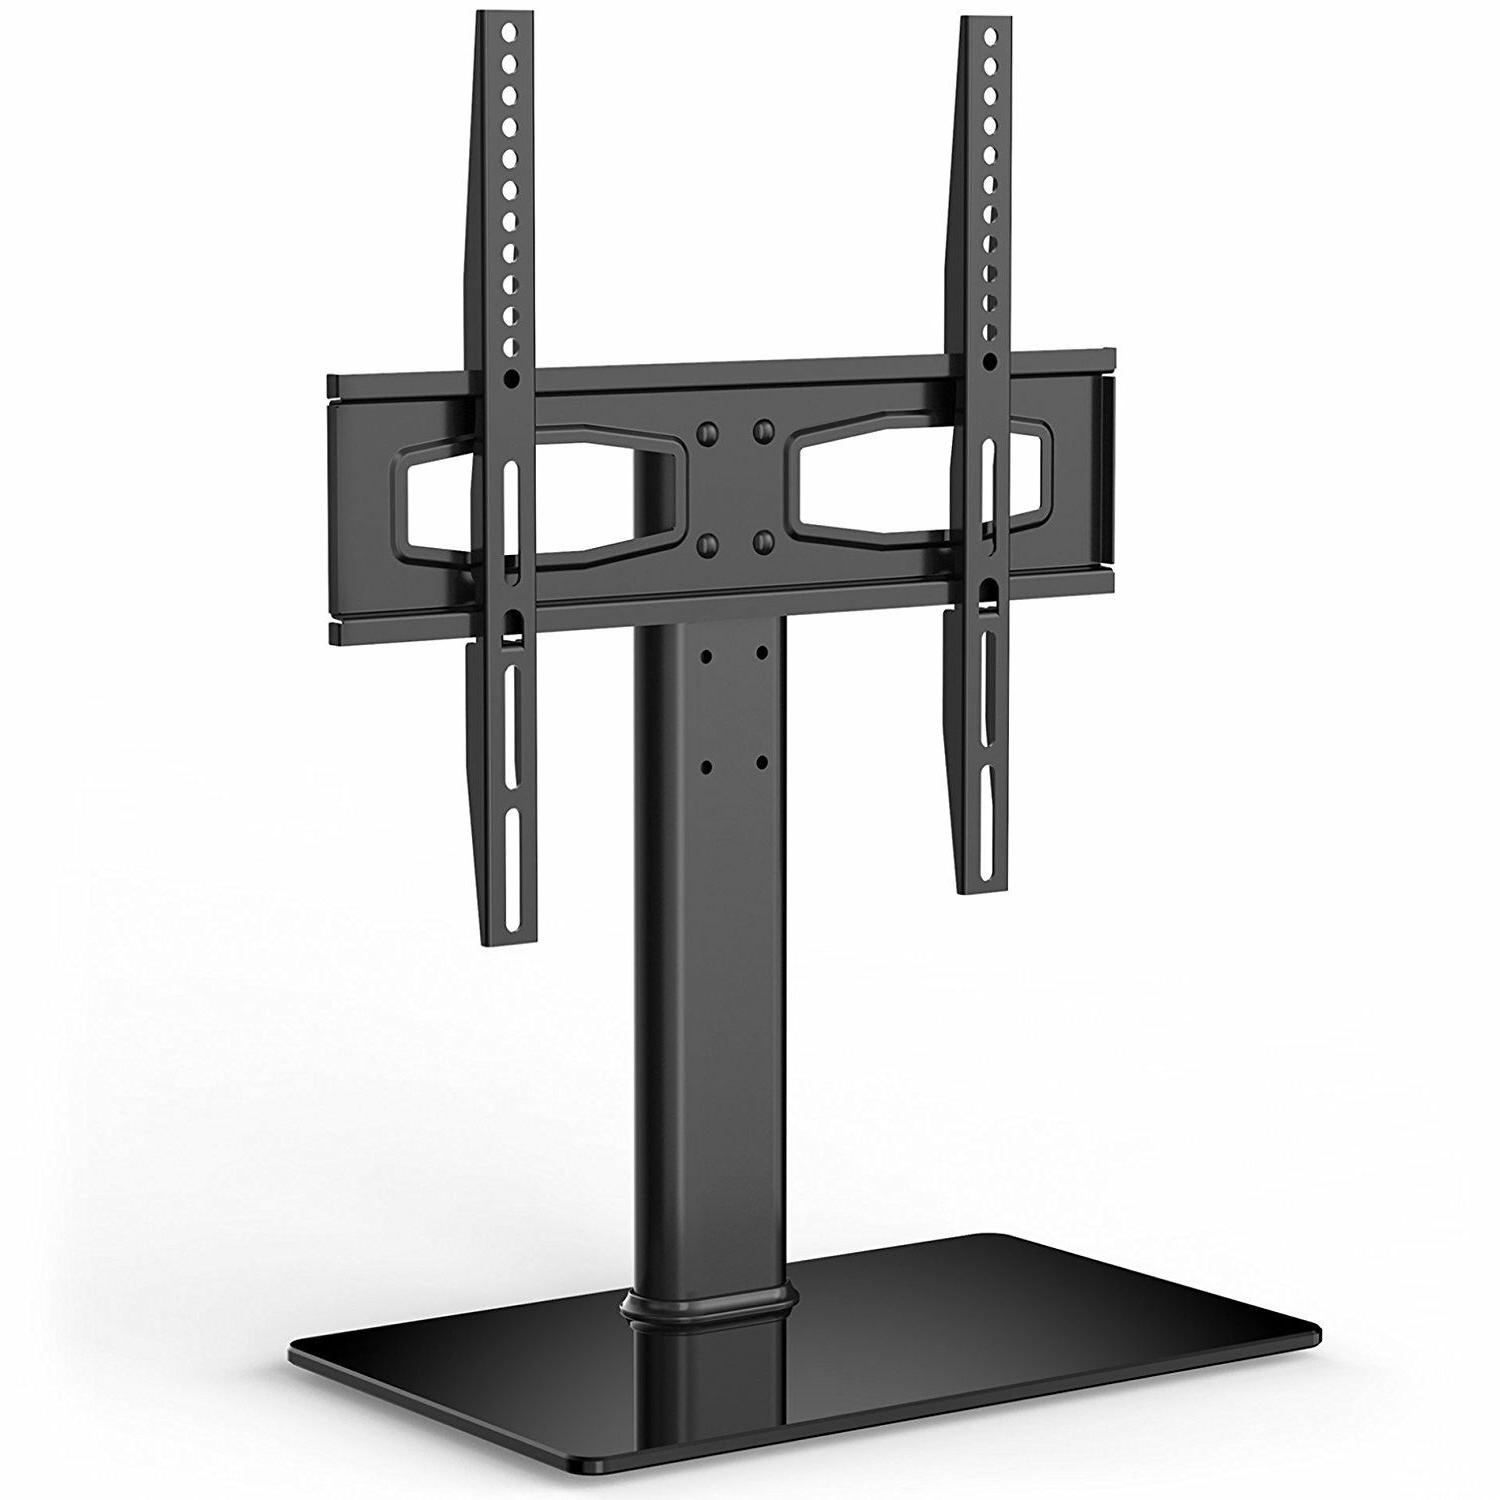 TV Stand Top Flat Screen Fits 27 Inch